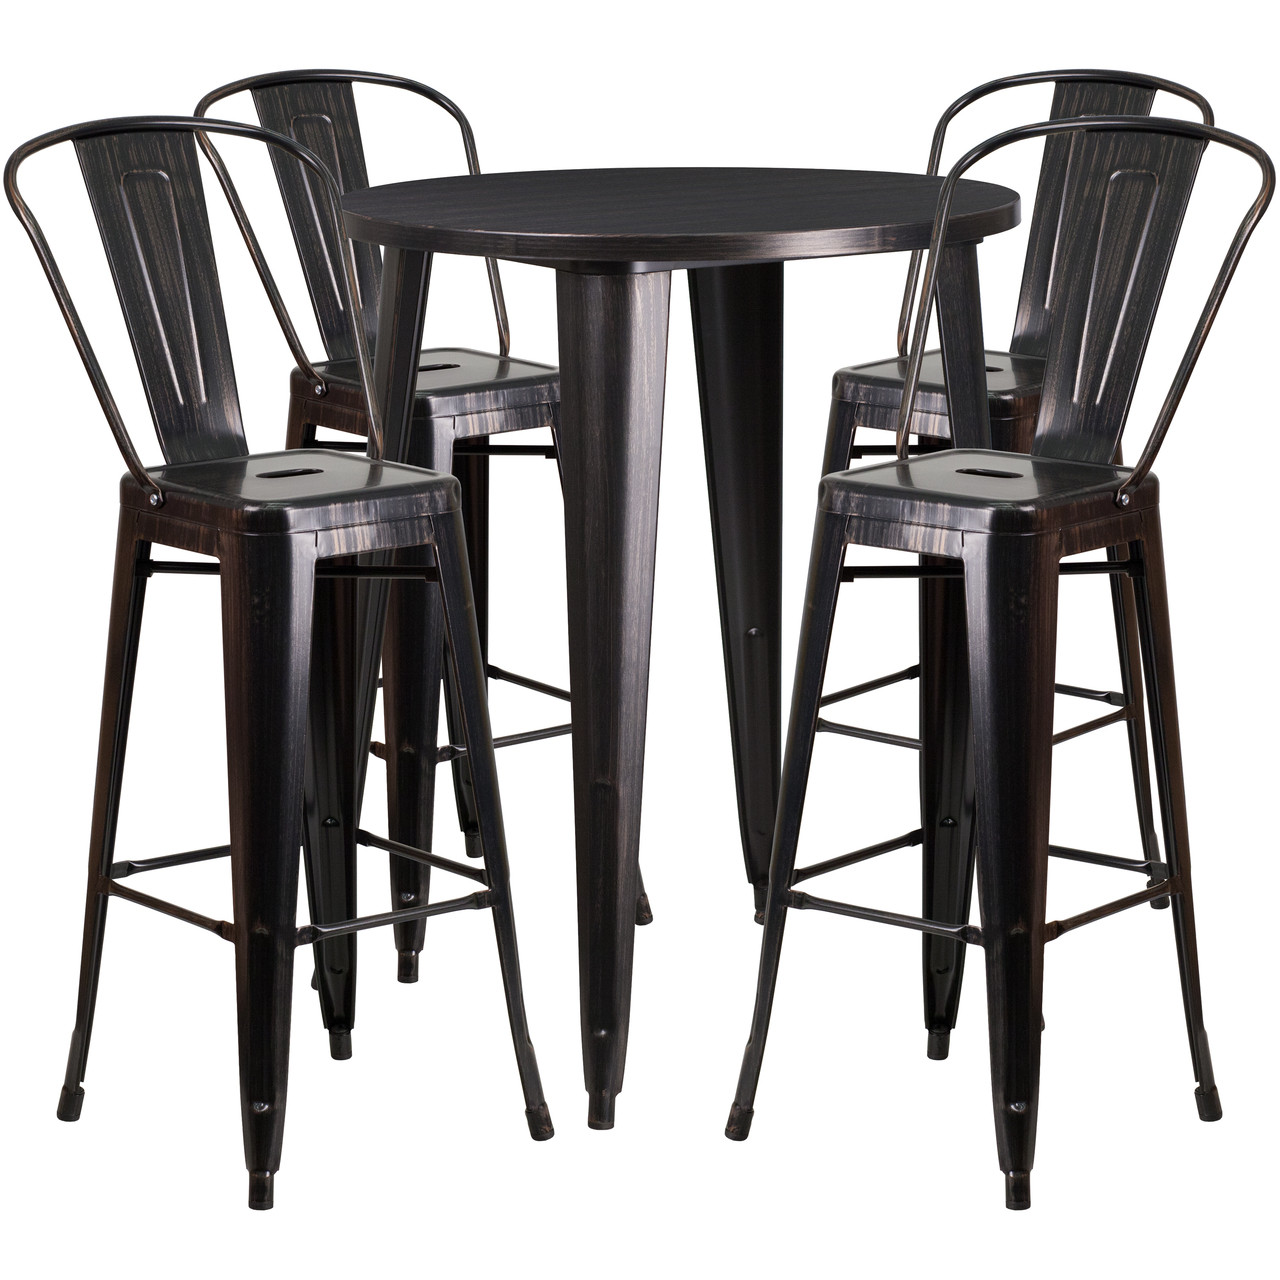 Amazing Flash Furniture 30 Round Black Antique Gold Metal Indoor Outdoor Bar Table Set With 4 Cafe Stools Pdpeps Interior Chair Design Pdpepsorg